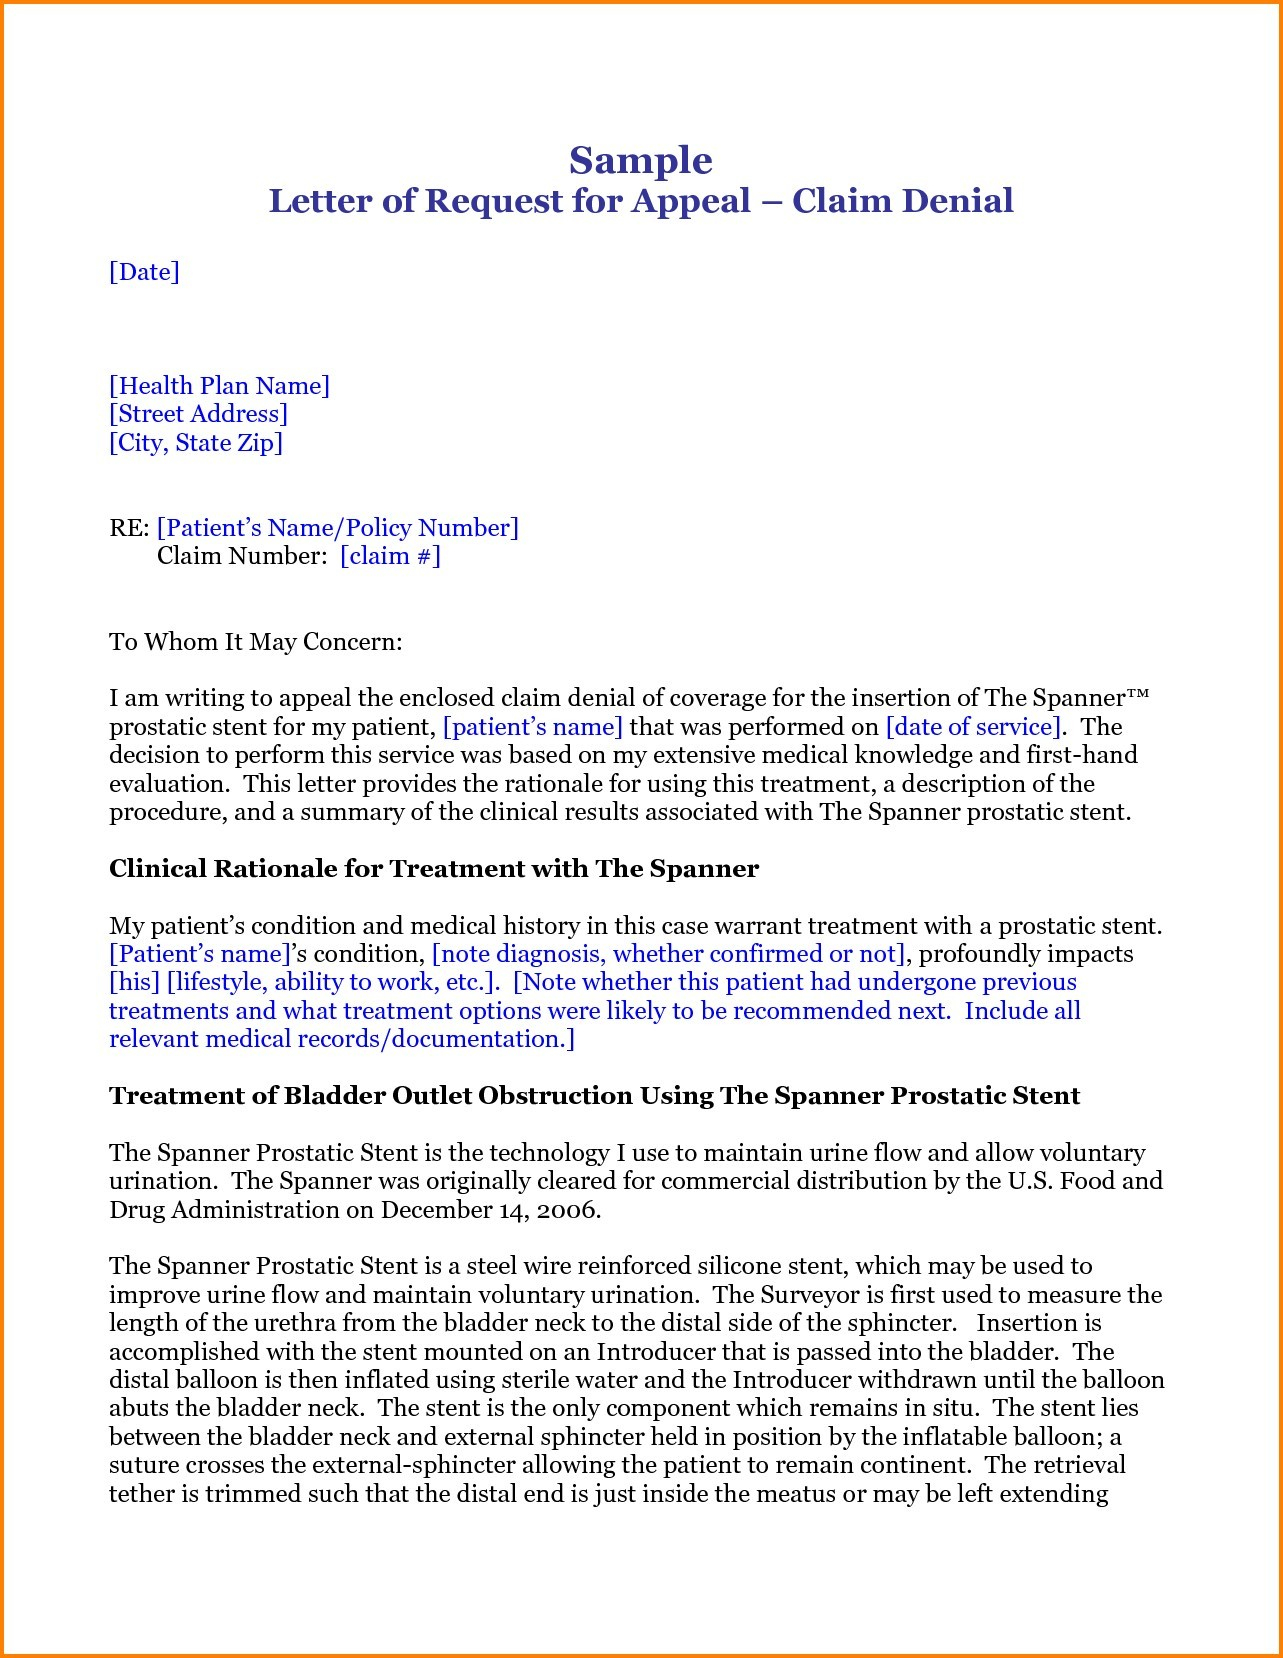 Claim Denial Letter Template - Letter format for Medical Insurance Claim Fresh Letter format for